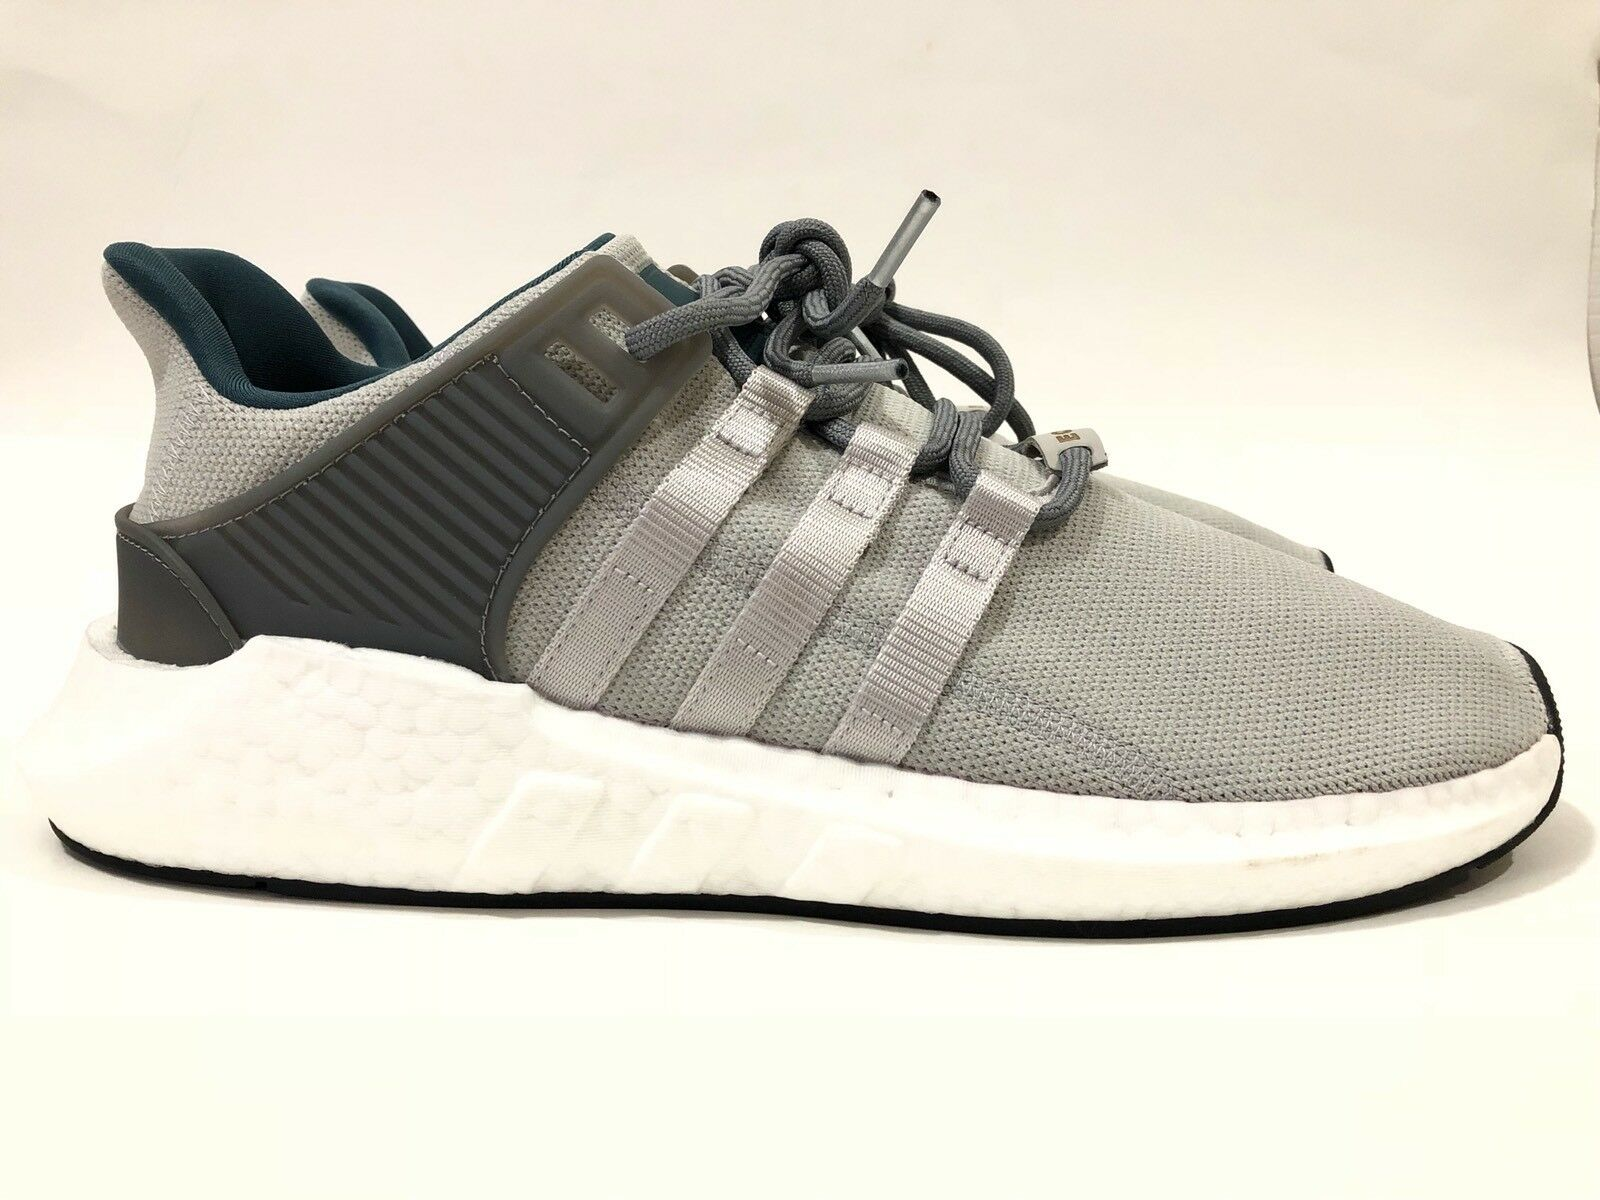 New Uomo's Adidas EQT Support 93/17 Boost Sz11 Grey Shoes Nmd Yeezy Human